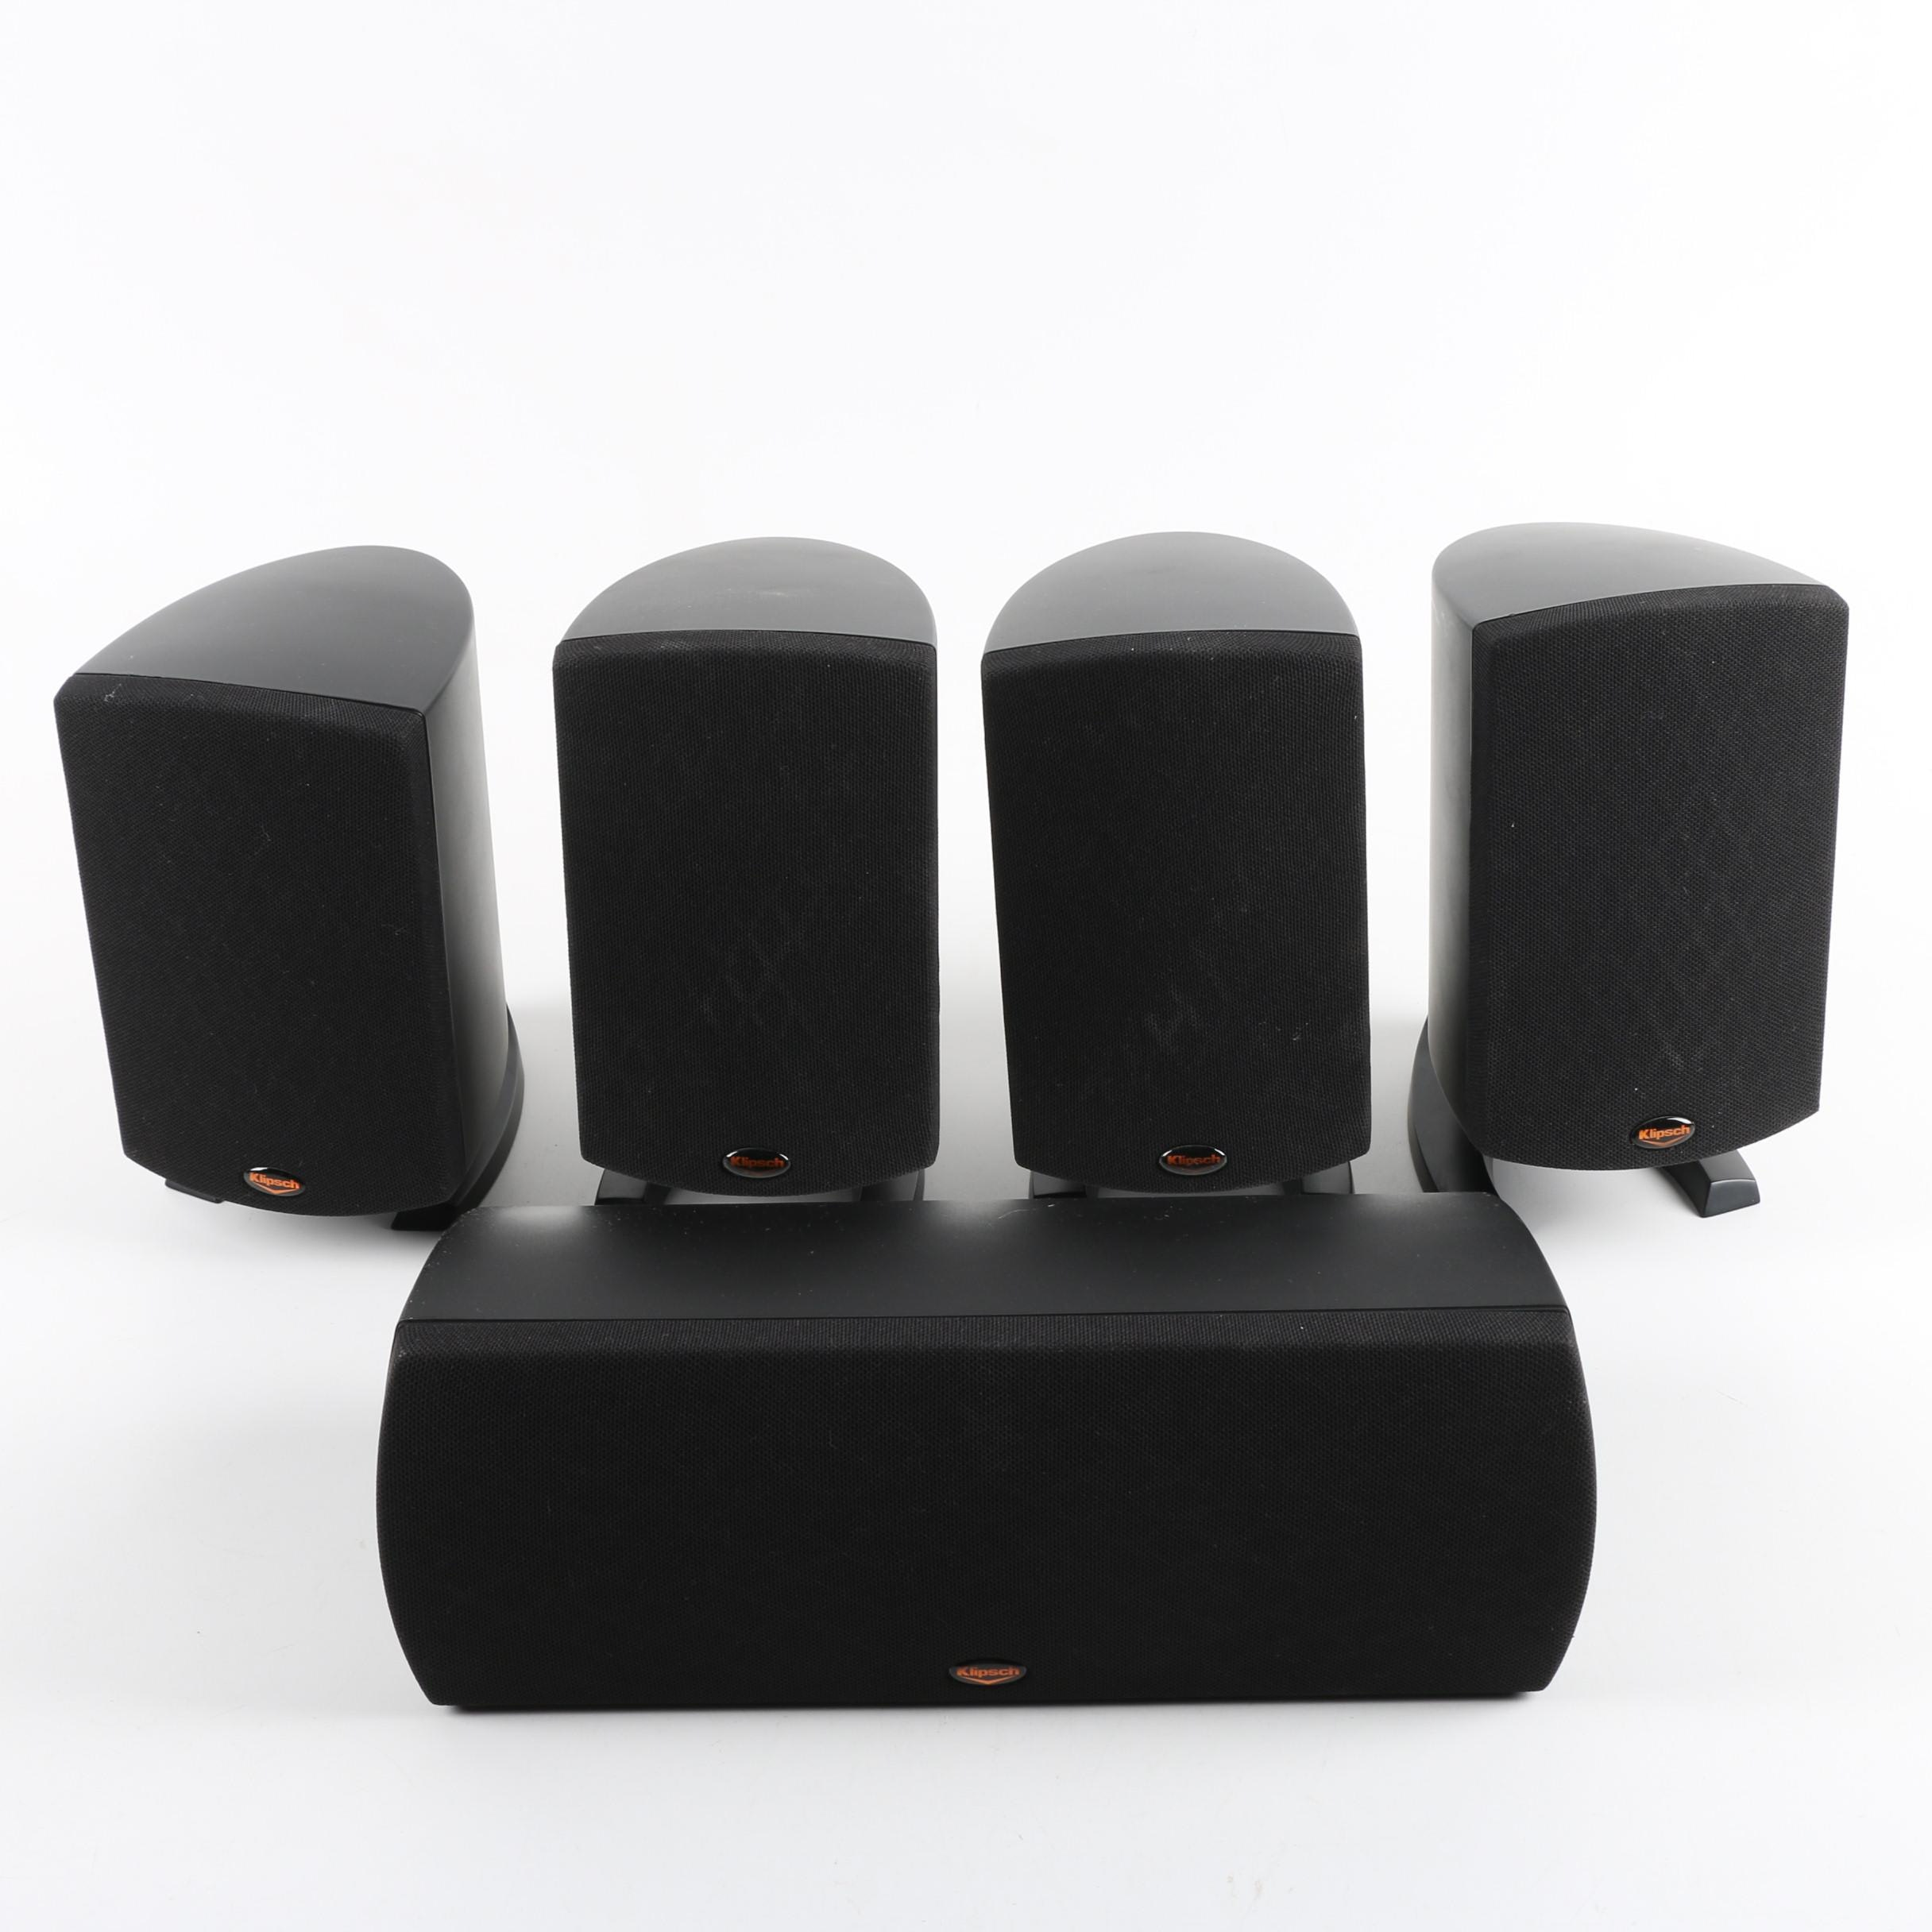 Klipsch Quintet II Home Theater Speaker System